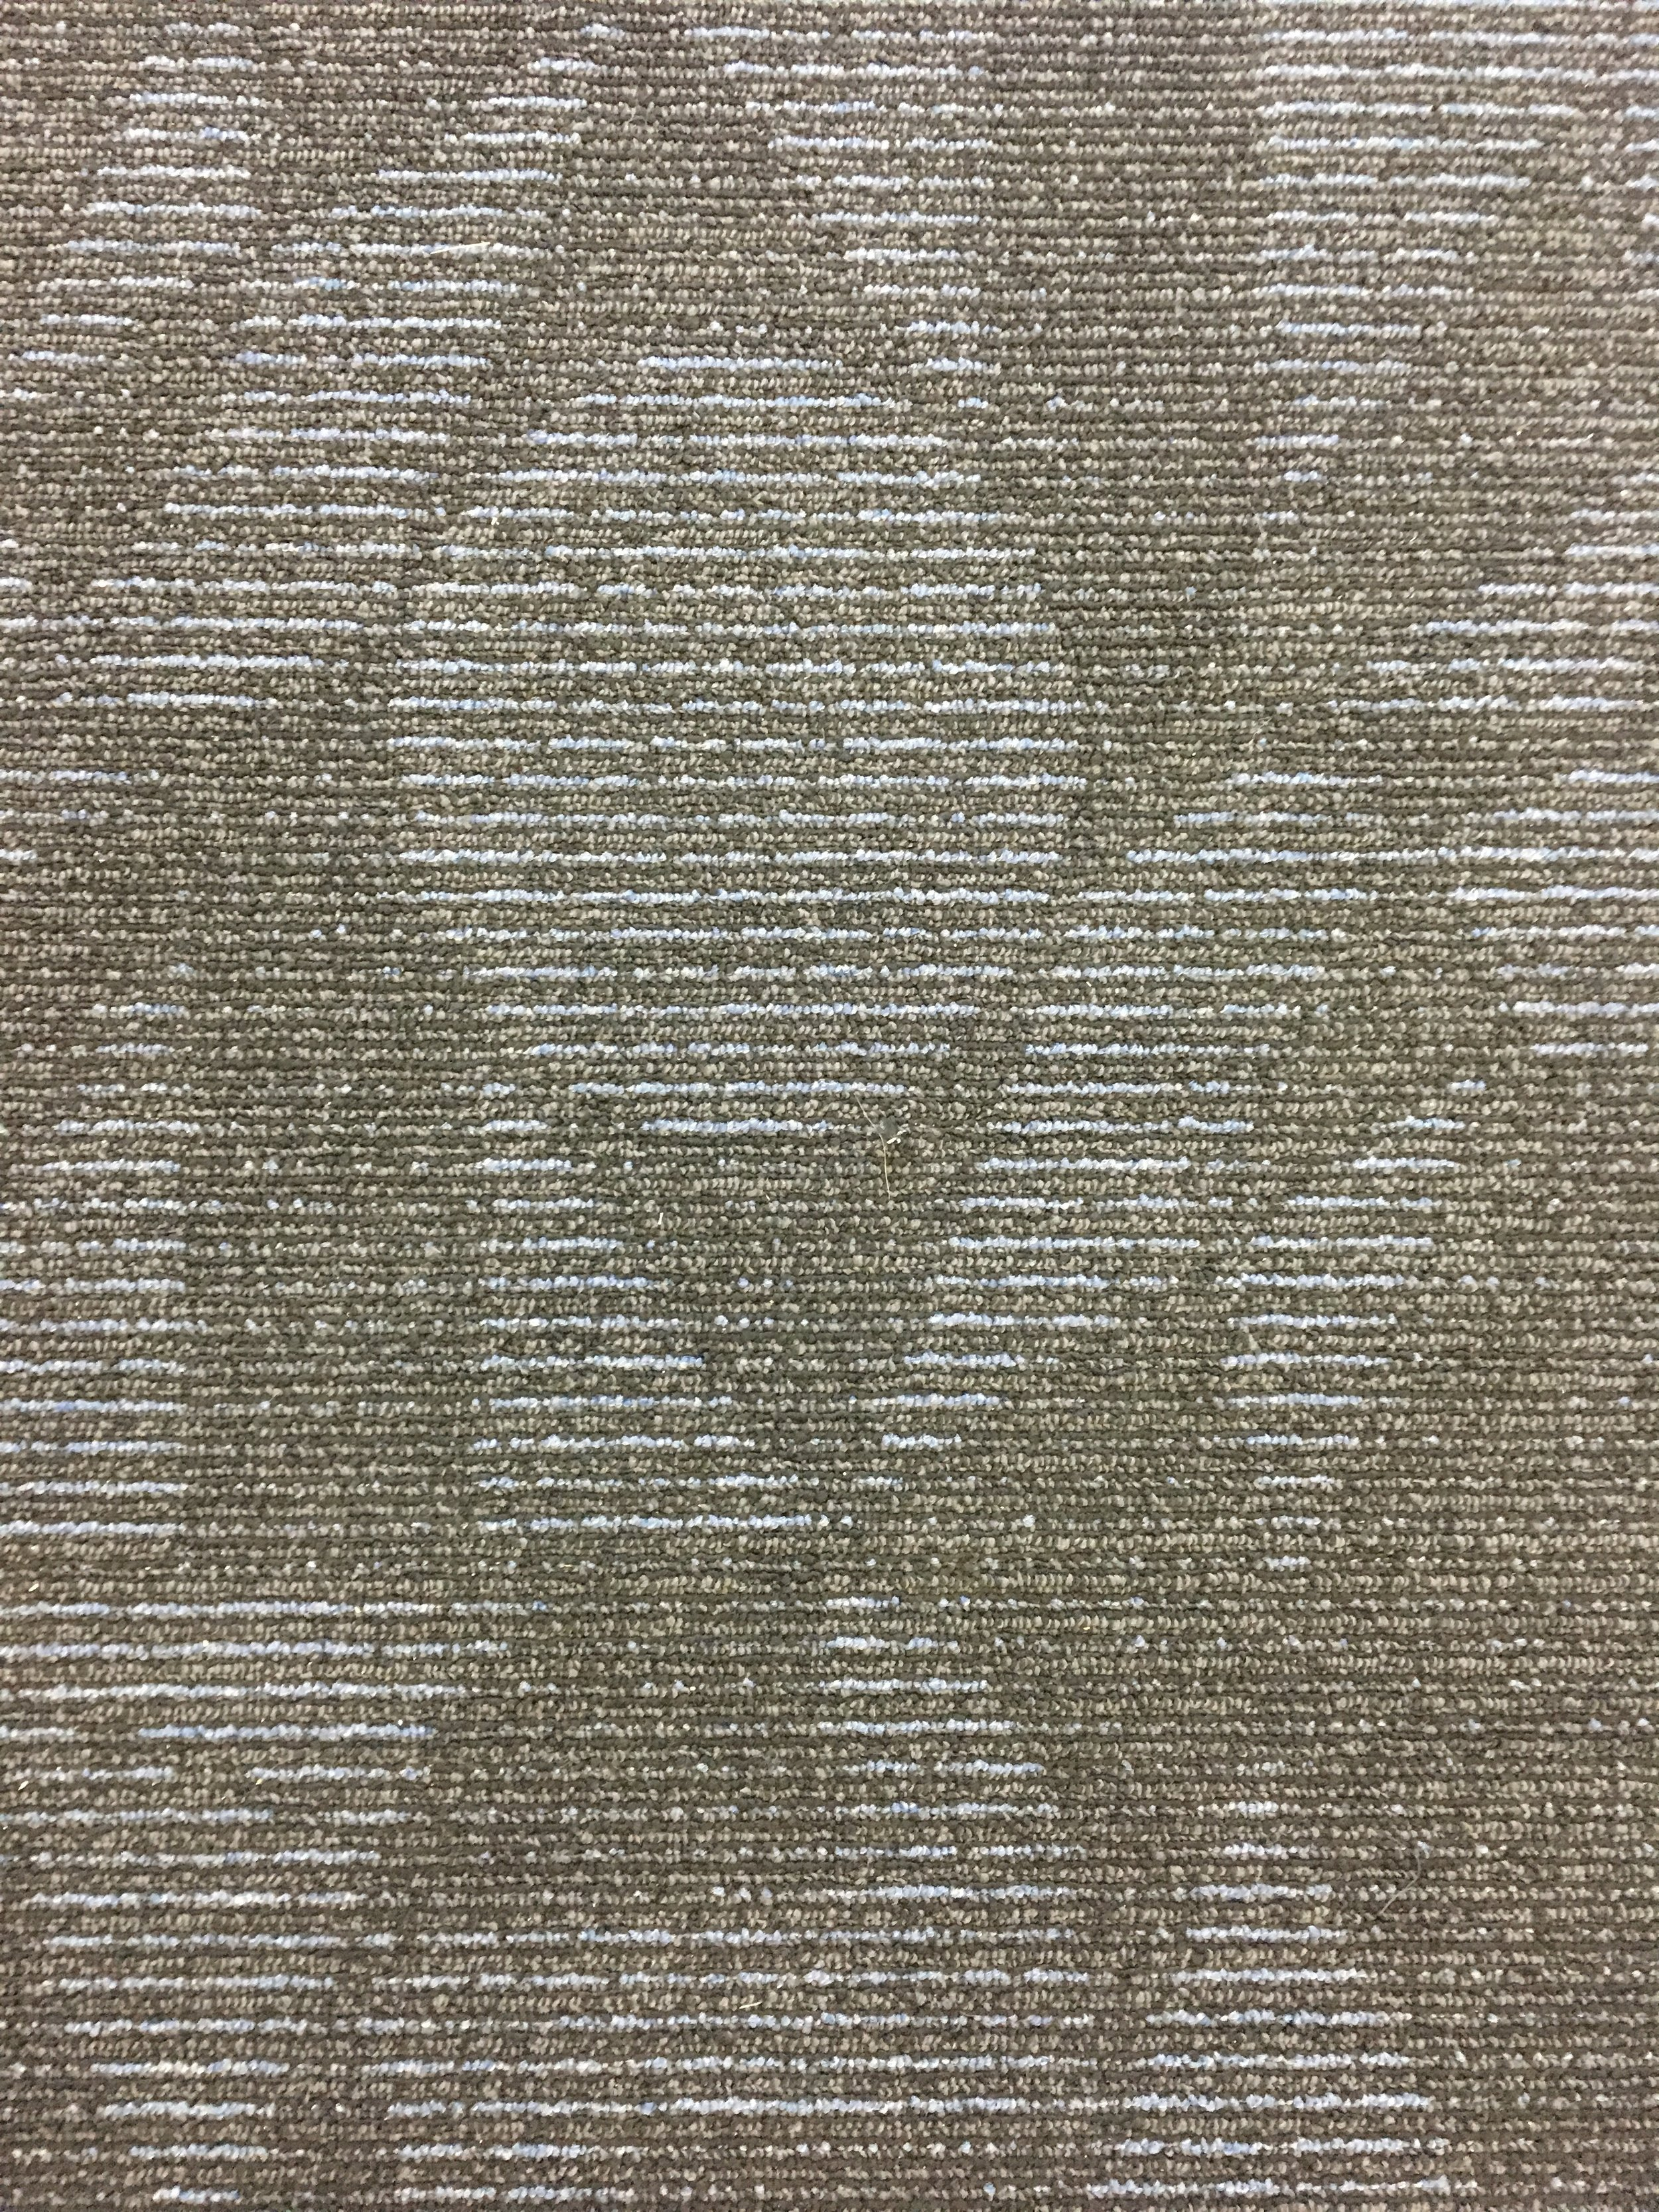 ALONE // Airport Carpet Zine: Photograph of organic carpet pattern at BDL (Hartford, CT)